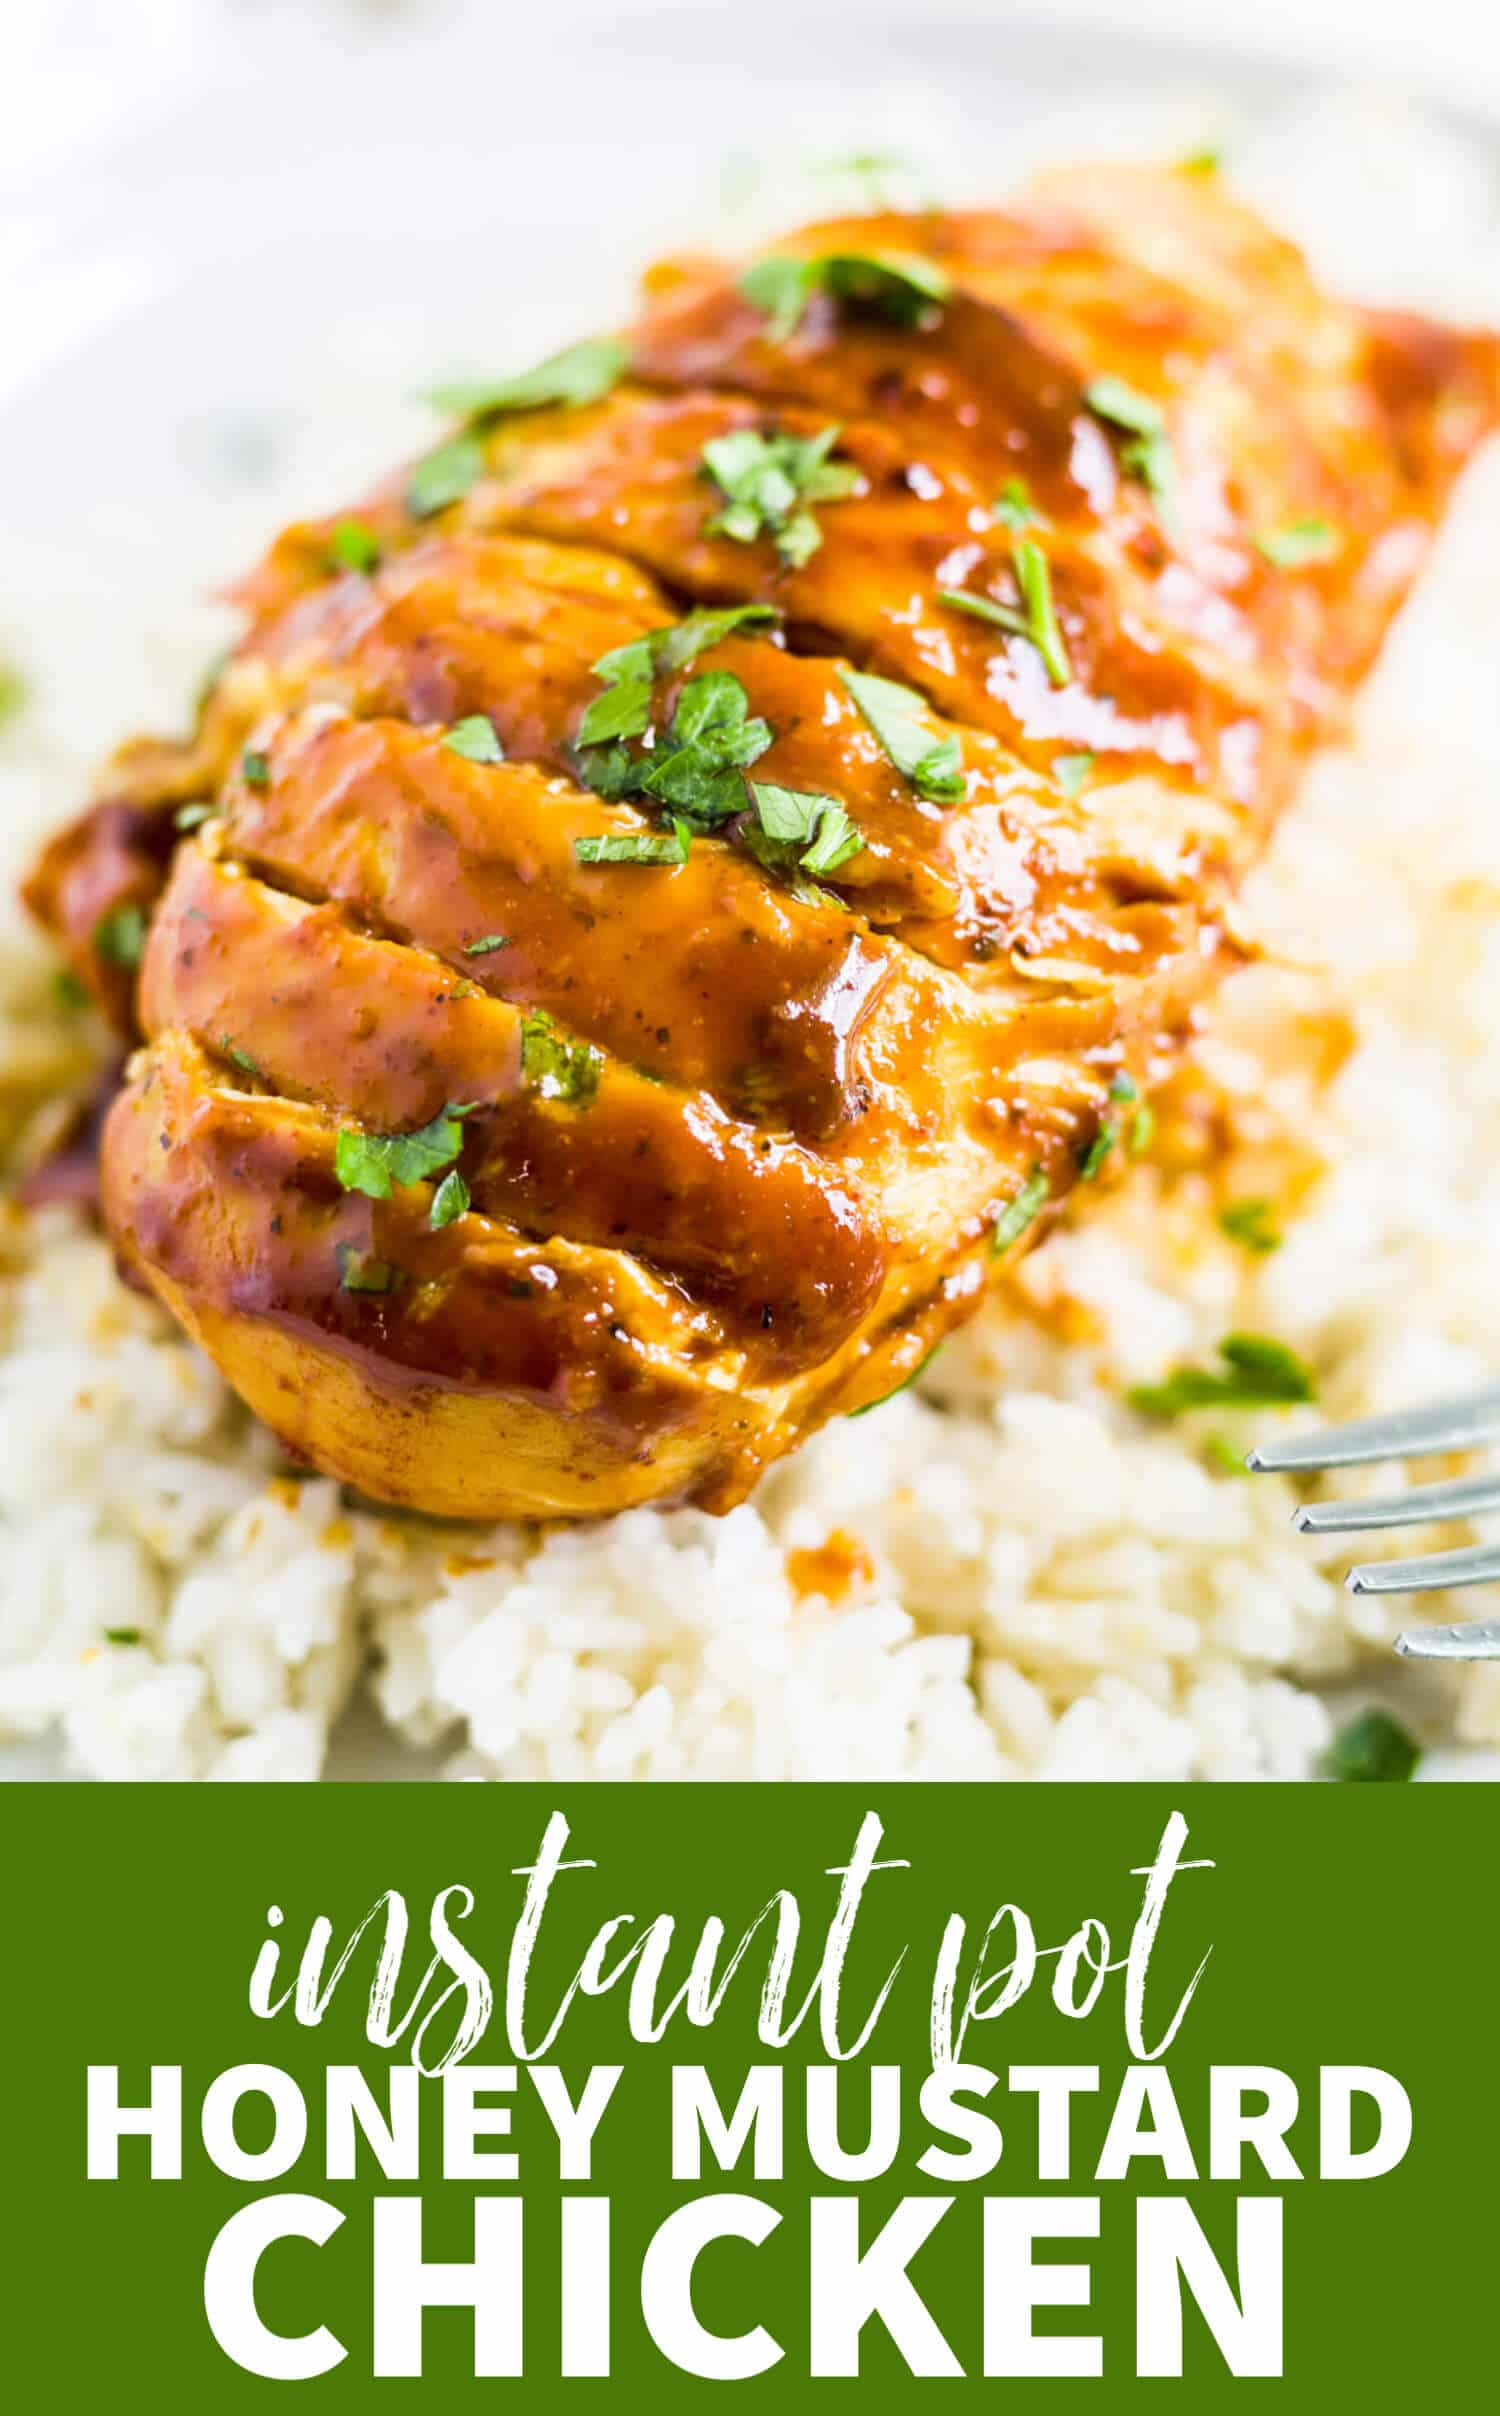 instant pot honey mustard chicken recipe